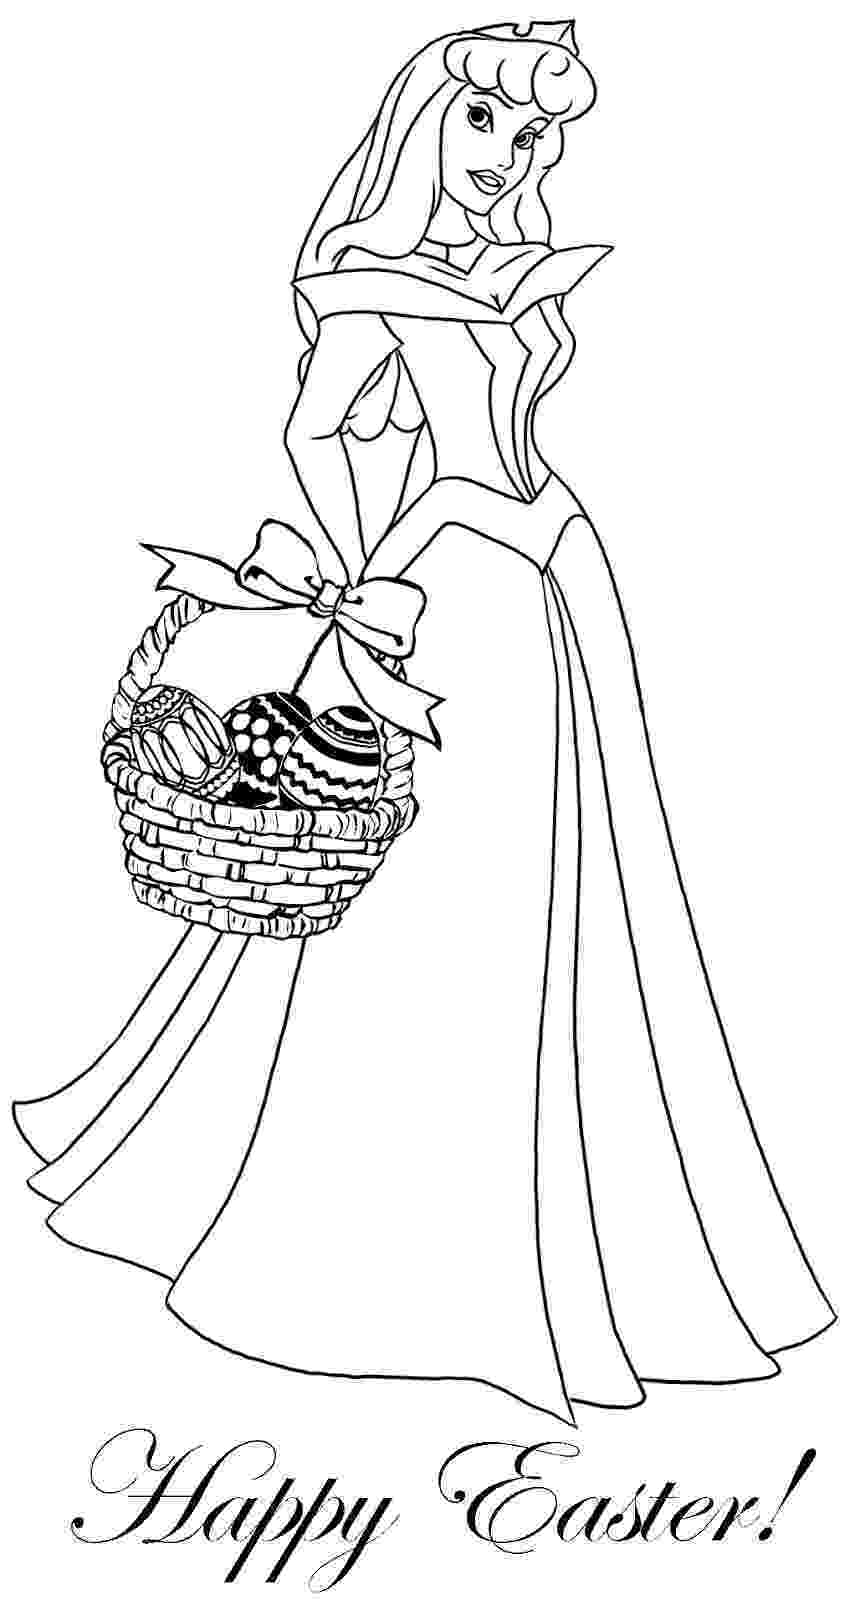 coloring pages online princess printable disney coloring pages for kids cool2bkids online coloring princess pages